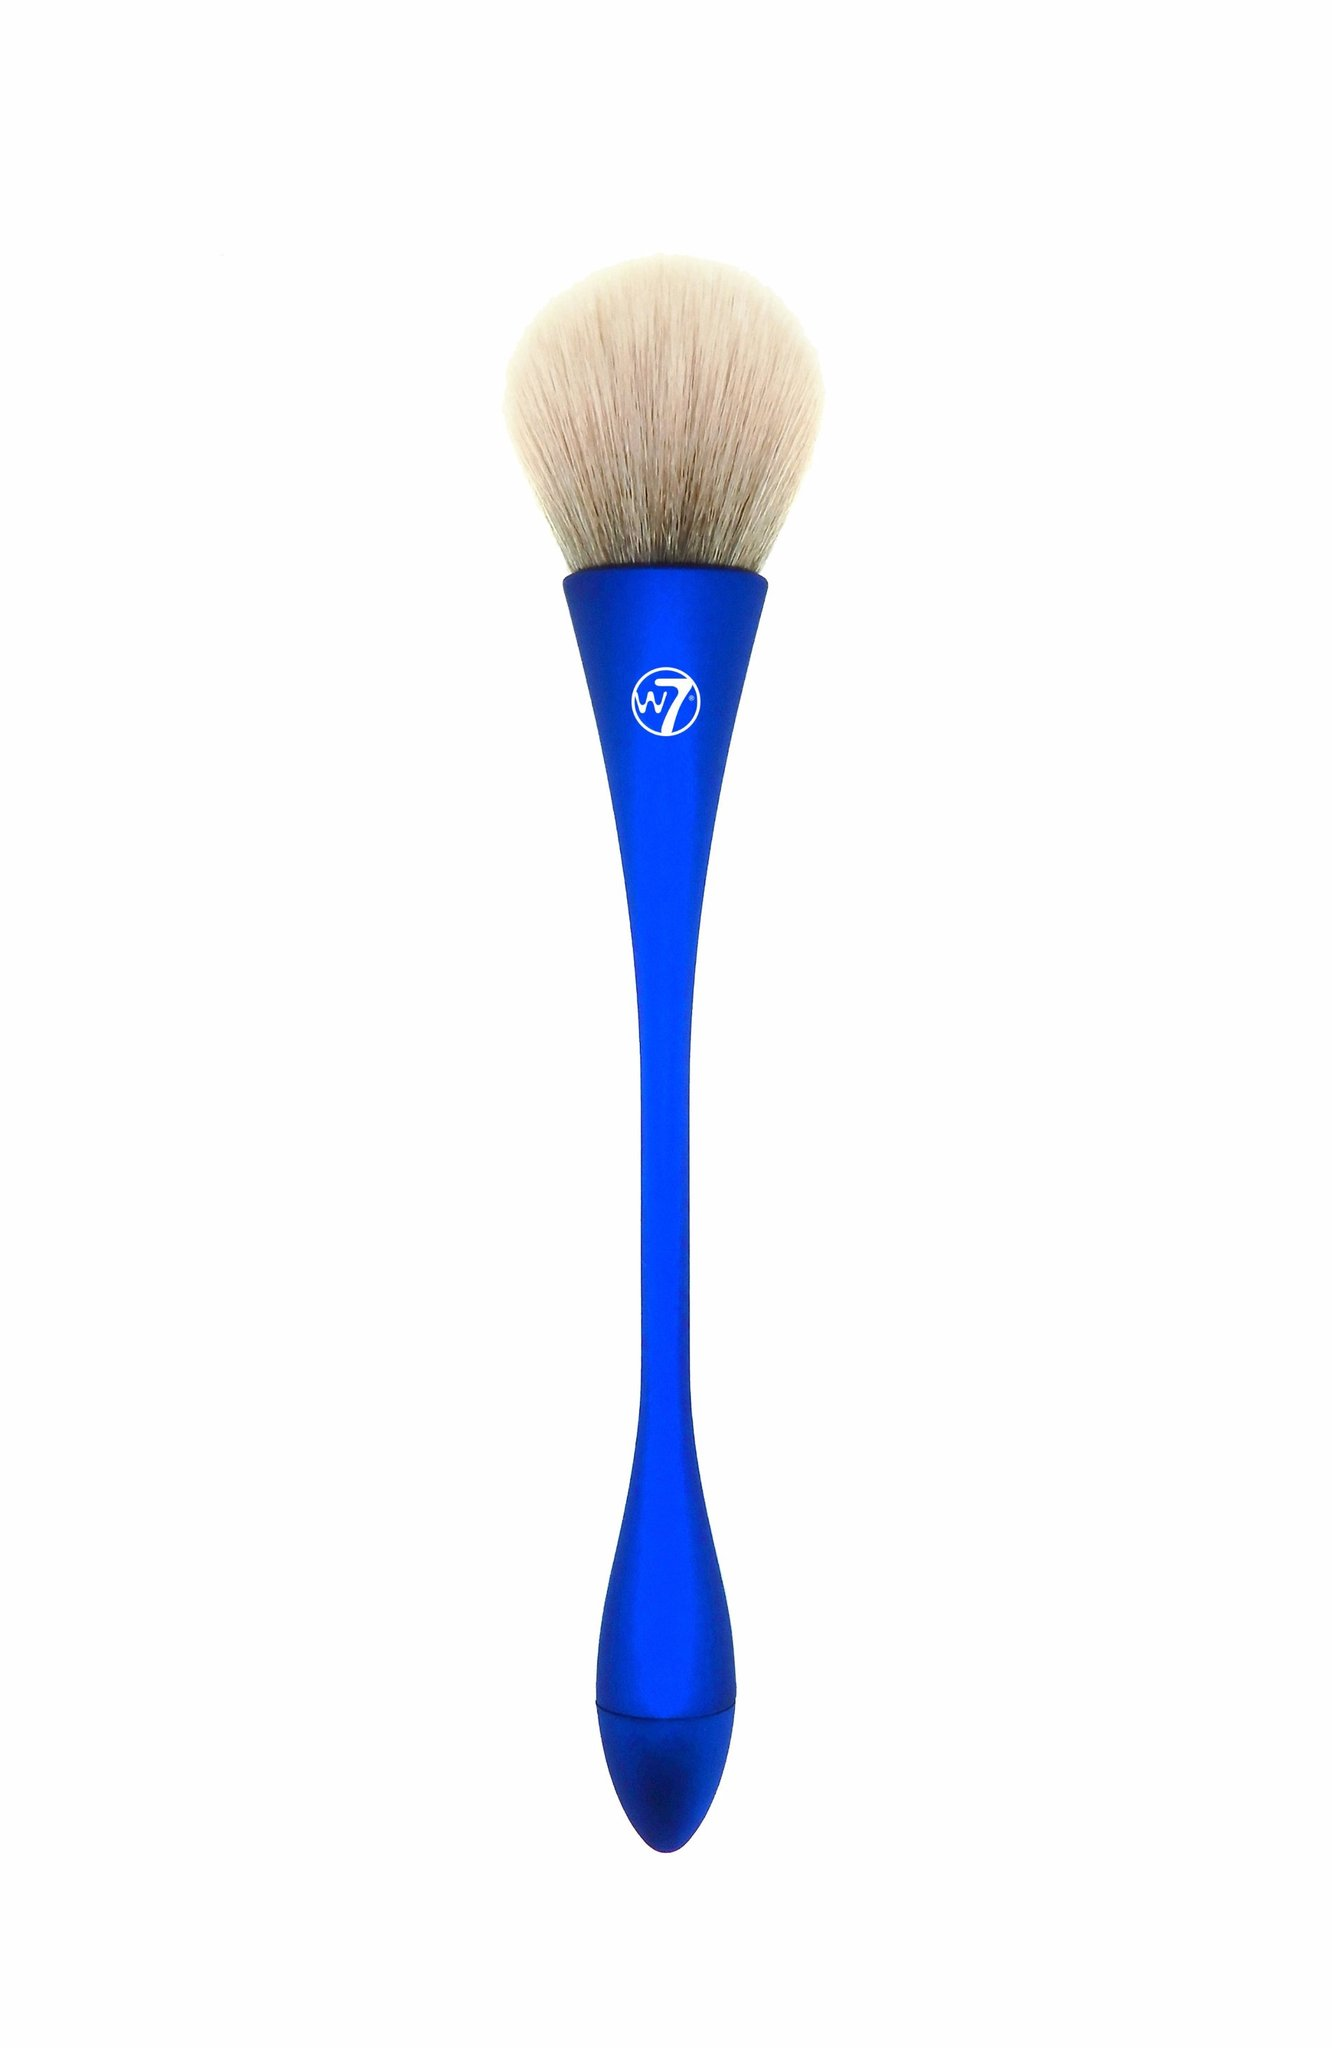 W7 Professional Blue brush set 3 pcs